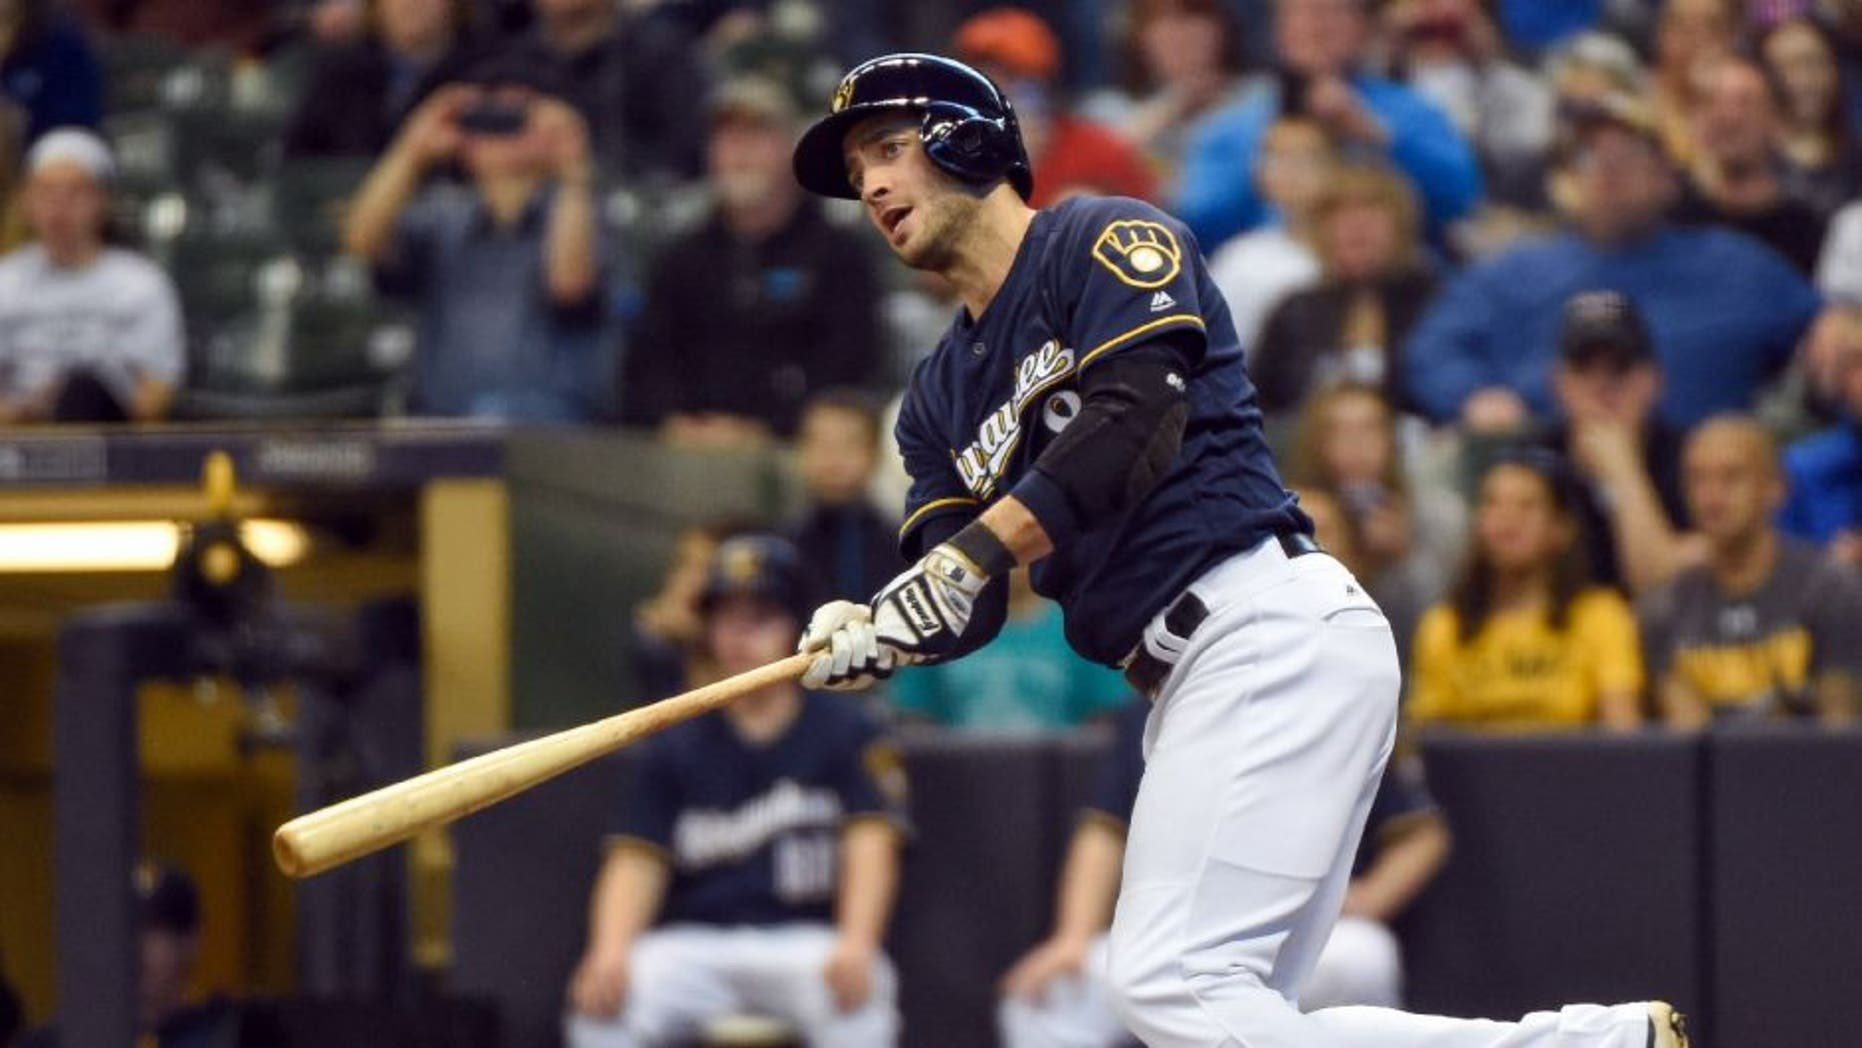 Milwaukee Brewers left fielder Ryan Braun (8) hits a double in the first inning against the Los Angeles Angels.